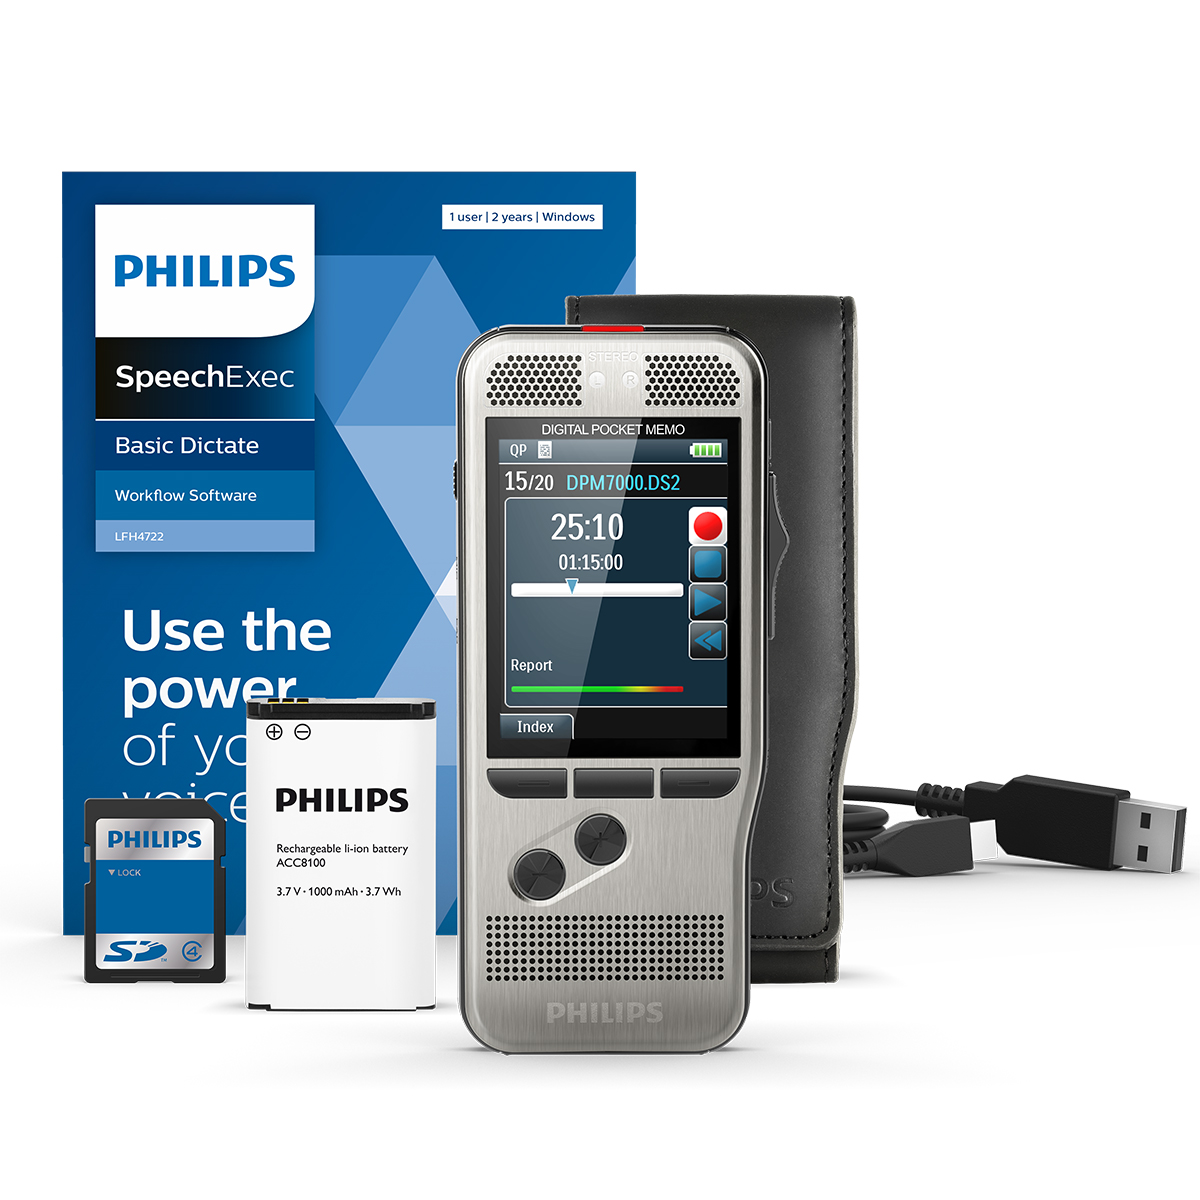 Philips DPM7700 Slide Switch Memo with SpeechExec 11 Transcription Set